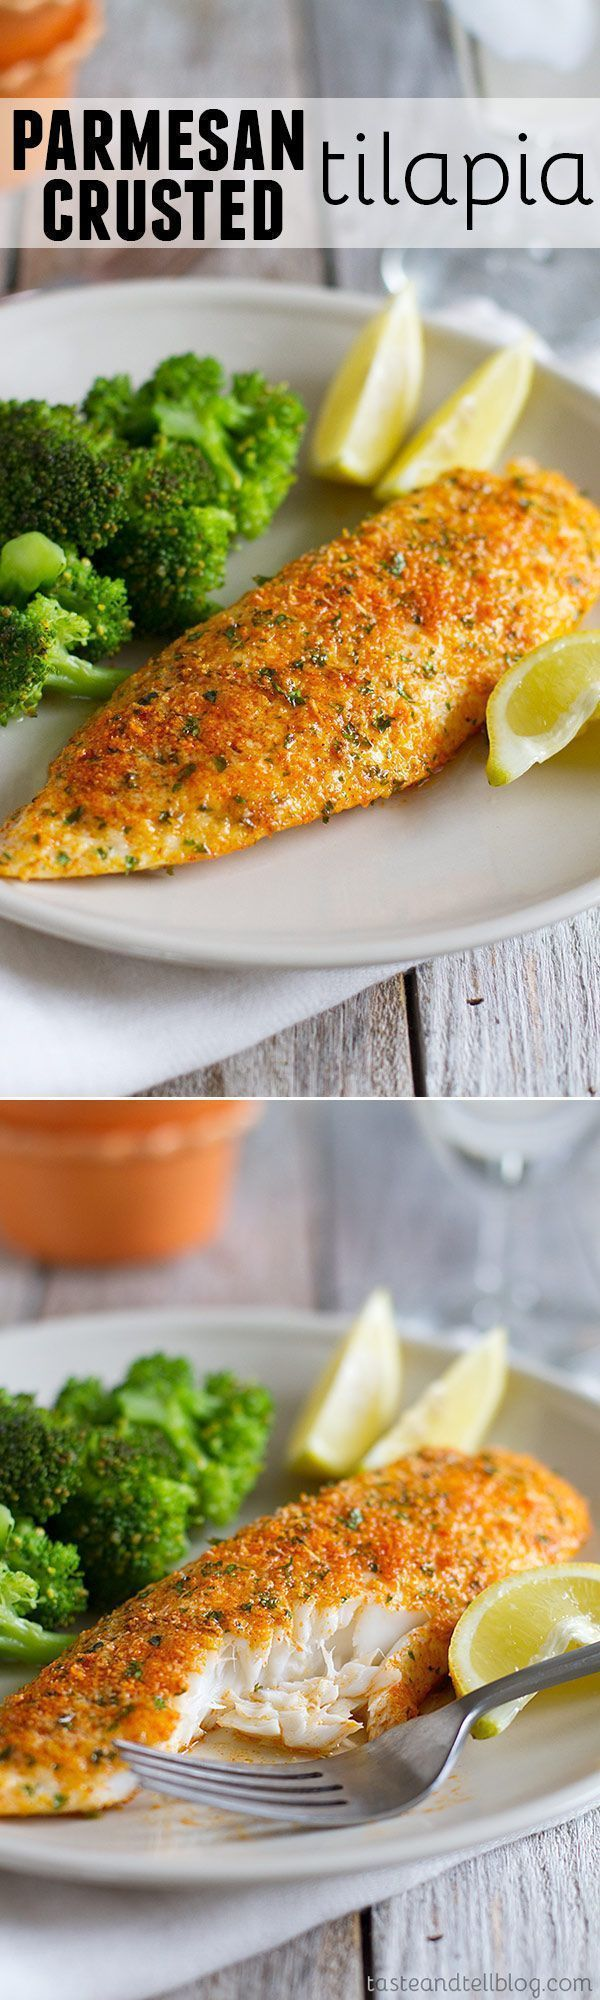 This Parmesan Crusted Tilapia is a simple fish recipe that is done in 20 minutes and will even impress non-fish lovers!: #seafoodrecipes #DeliciousSeafoodMeals